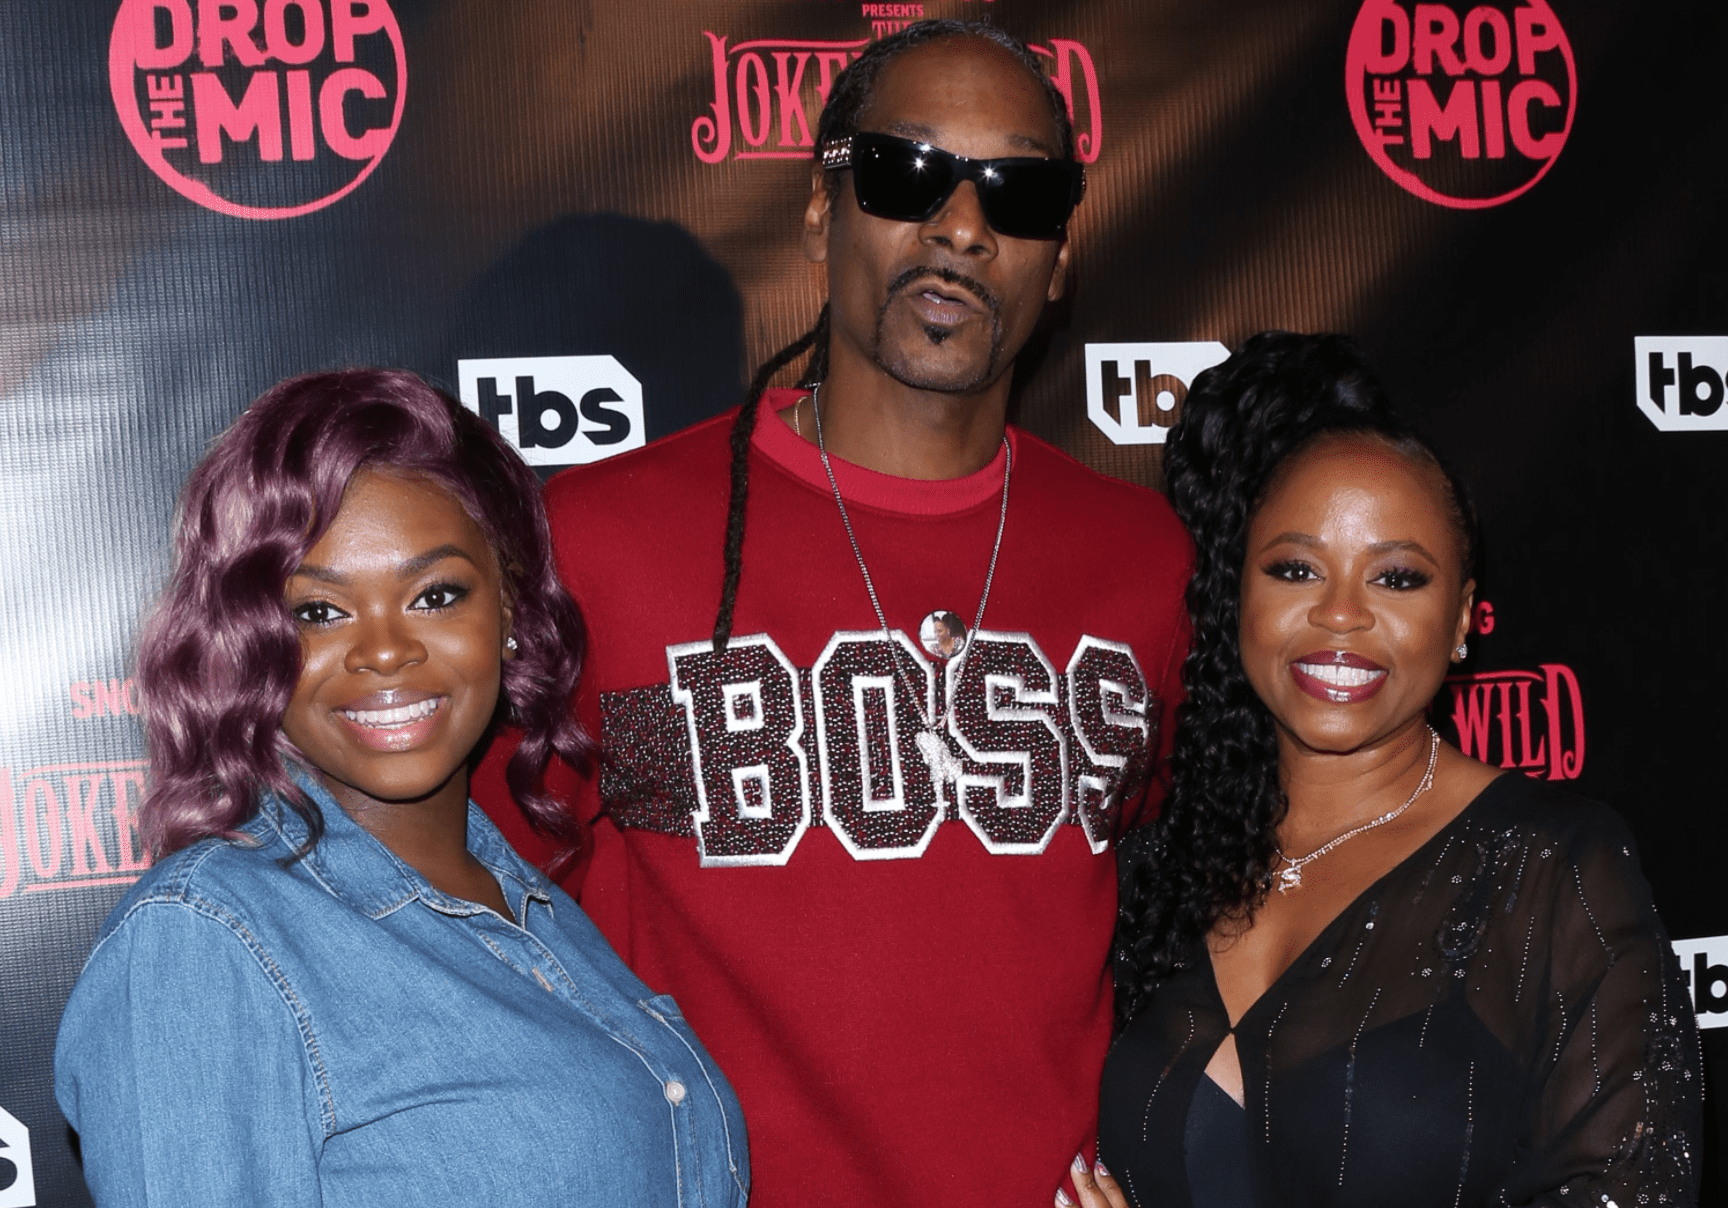 """Cori Broadus, Snoop Dogg and Shante Broadus at the premiere for TBS's """"Drop The Mic"""" in 2017 in Los Angeles.   Source: Getty Images"""